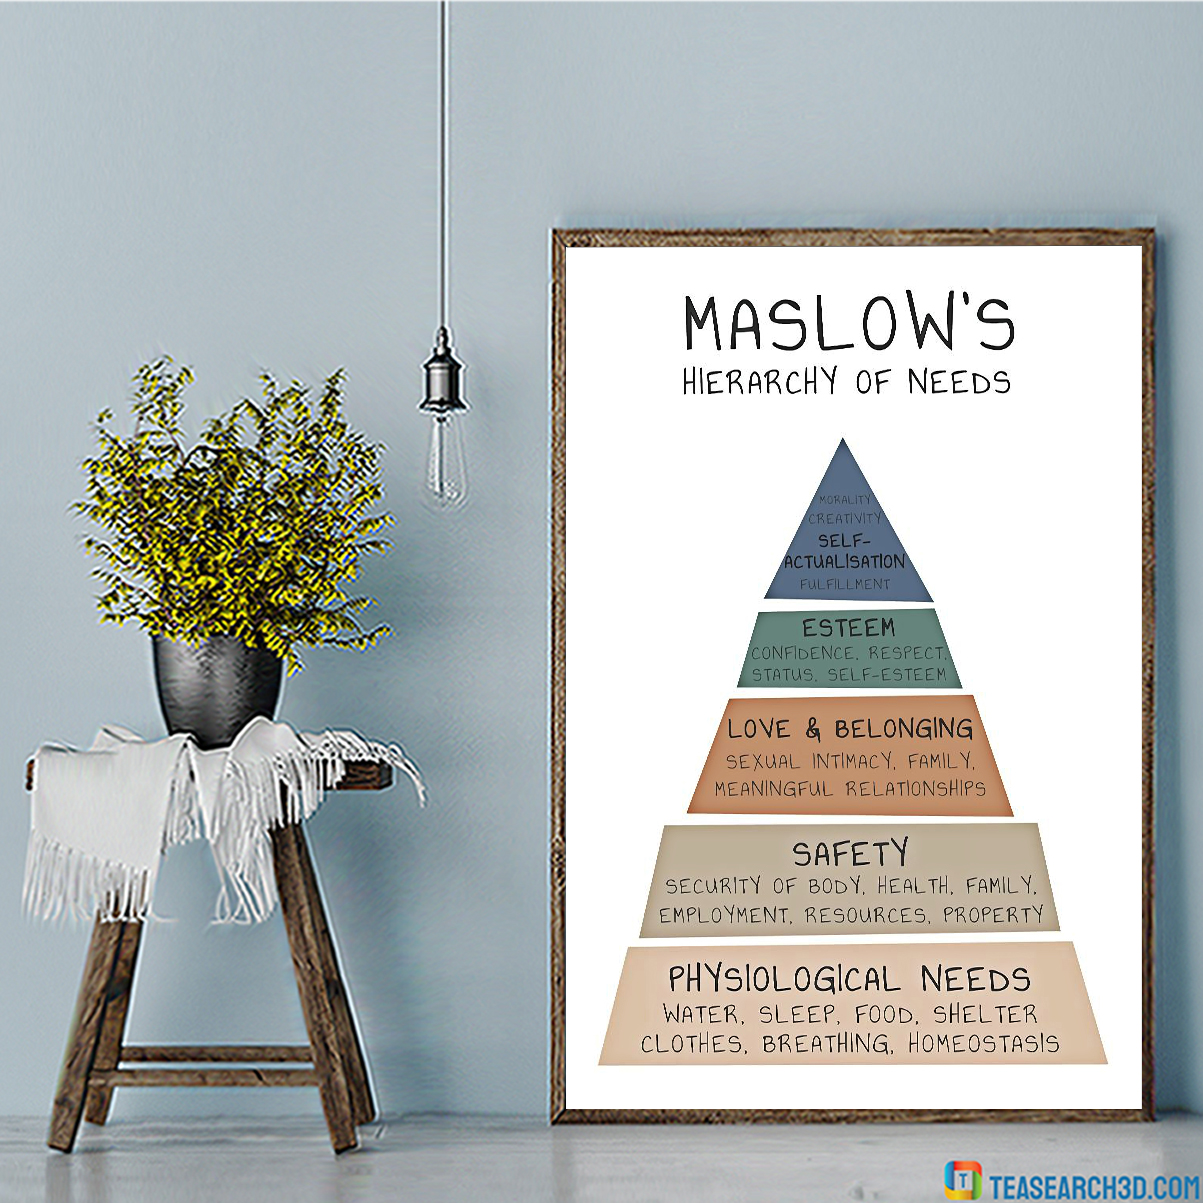 Social worker maslow's hierarchy of need vertical poster A1